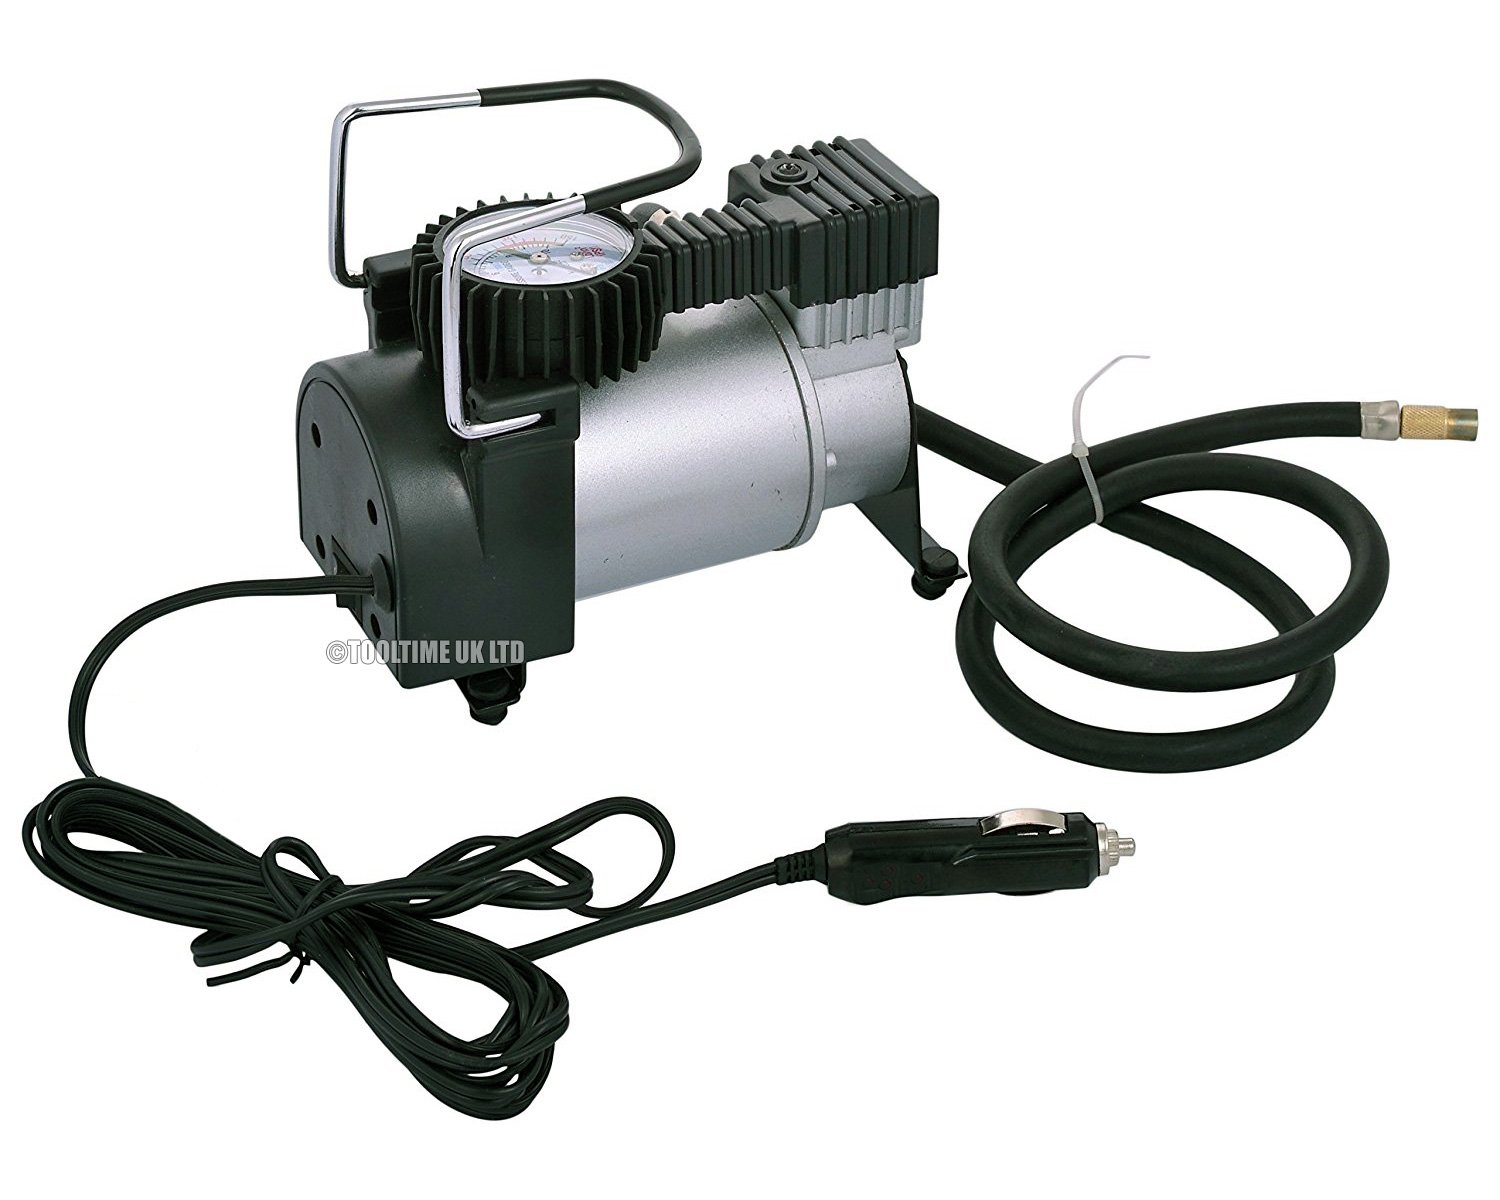 Voche Heavy Duty 12v Portable Air Compressor Car Tyre Inflator Help Wiring An Electrical Diy Chatroom Home Motorbike